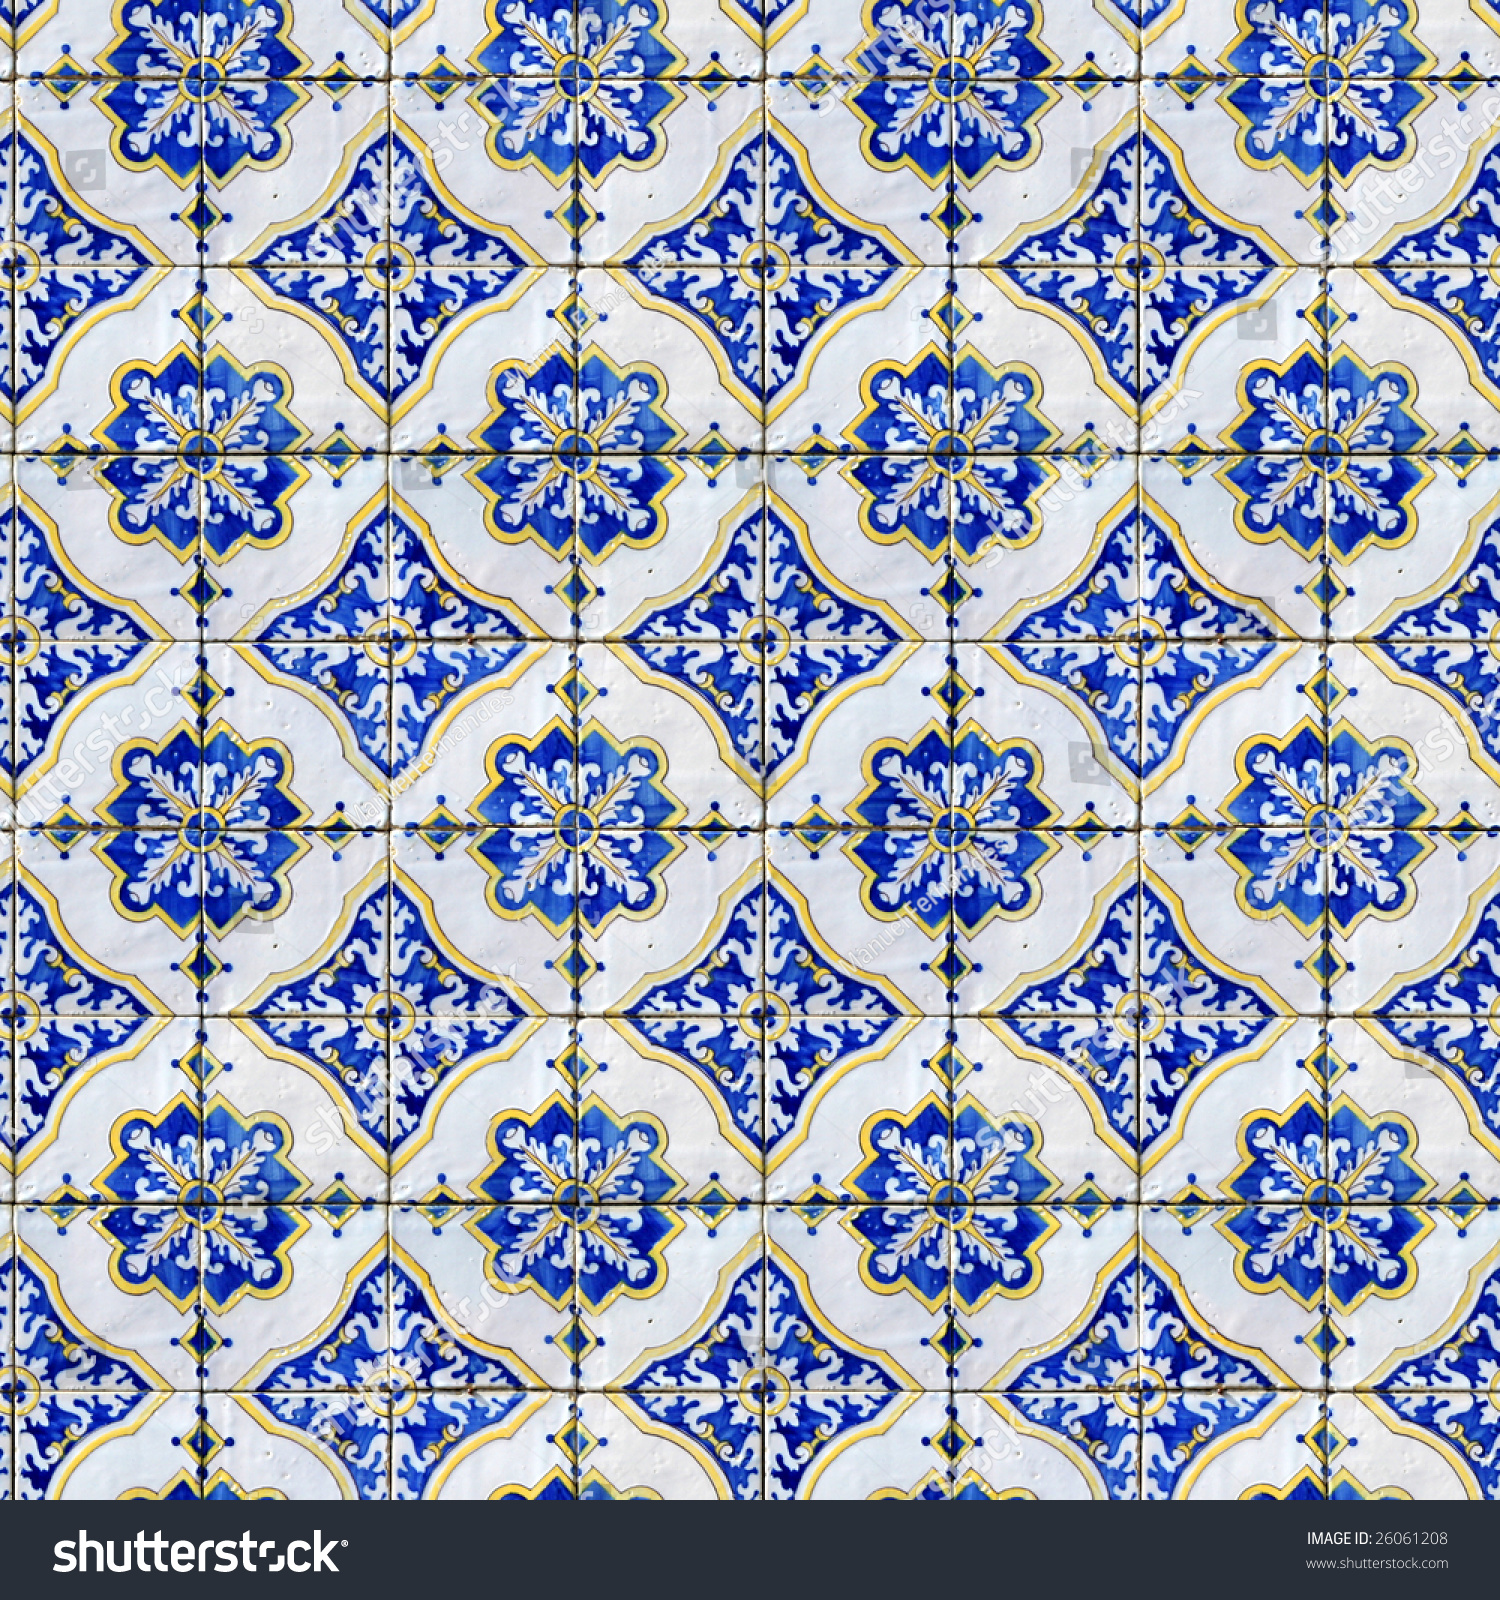 Seamless Tile Pattern Ancient Ceramic Tiles Stock Photo (Download ...